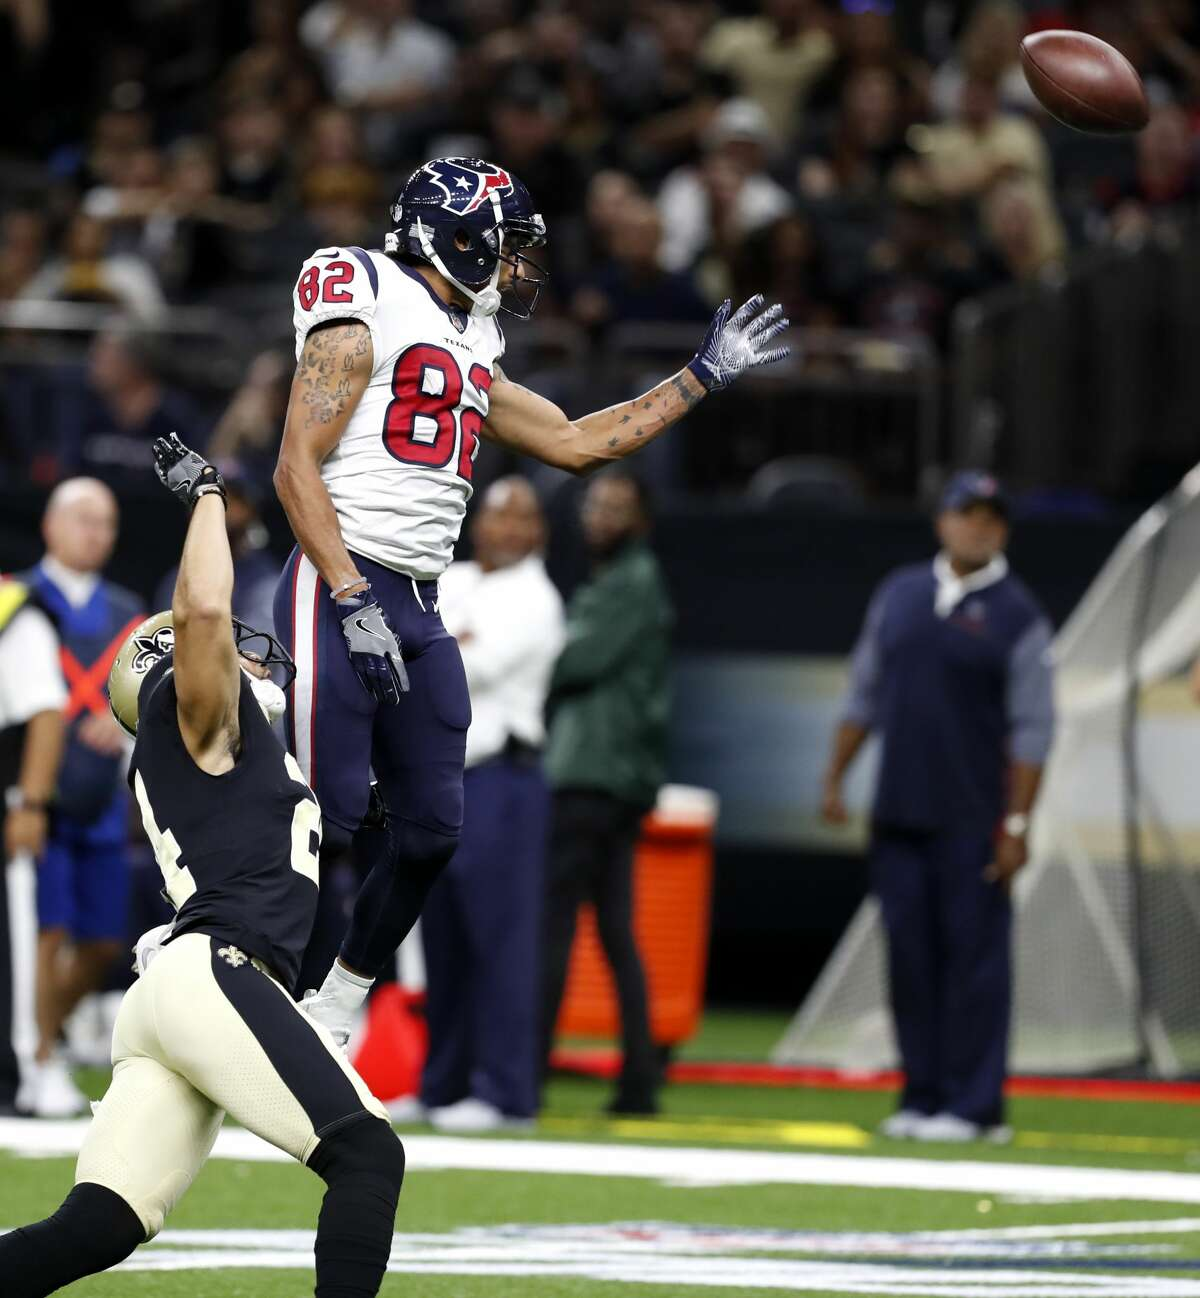 Houston Texans wide receiver Wendall Williams (82) can't come down with a pass over his head with New Orleans Saints cornerback Sterling Moore (24) defending during the third quarter of an NFL pre-season football game at the Mercedes-Benz Superdome on Saturday, Aug. 26, 2017, in New Orleans. ( Brett Coomer / Houston Chronicle )